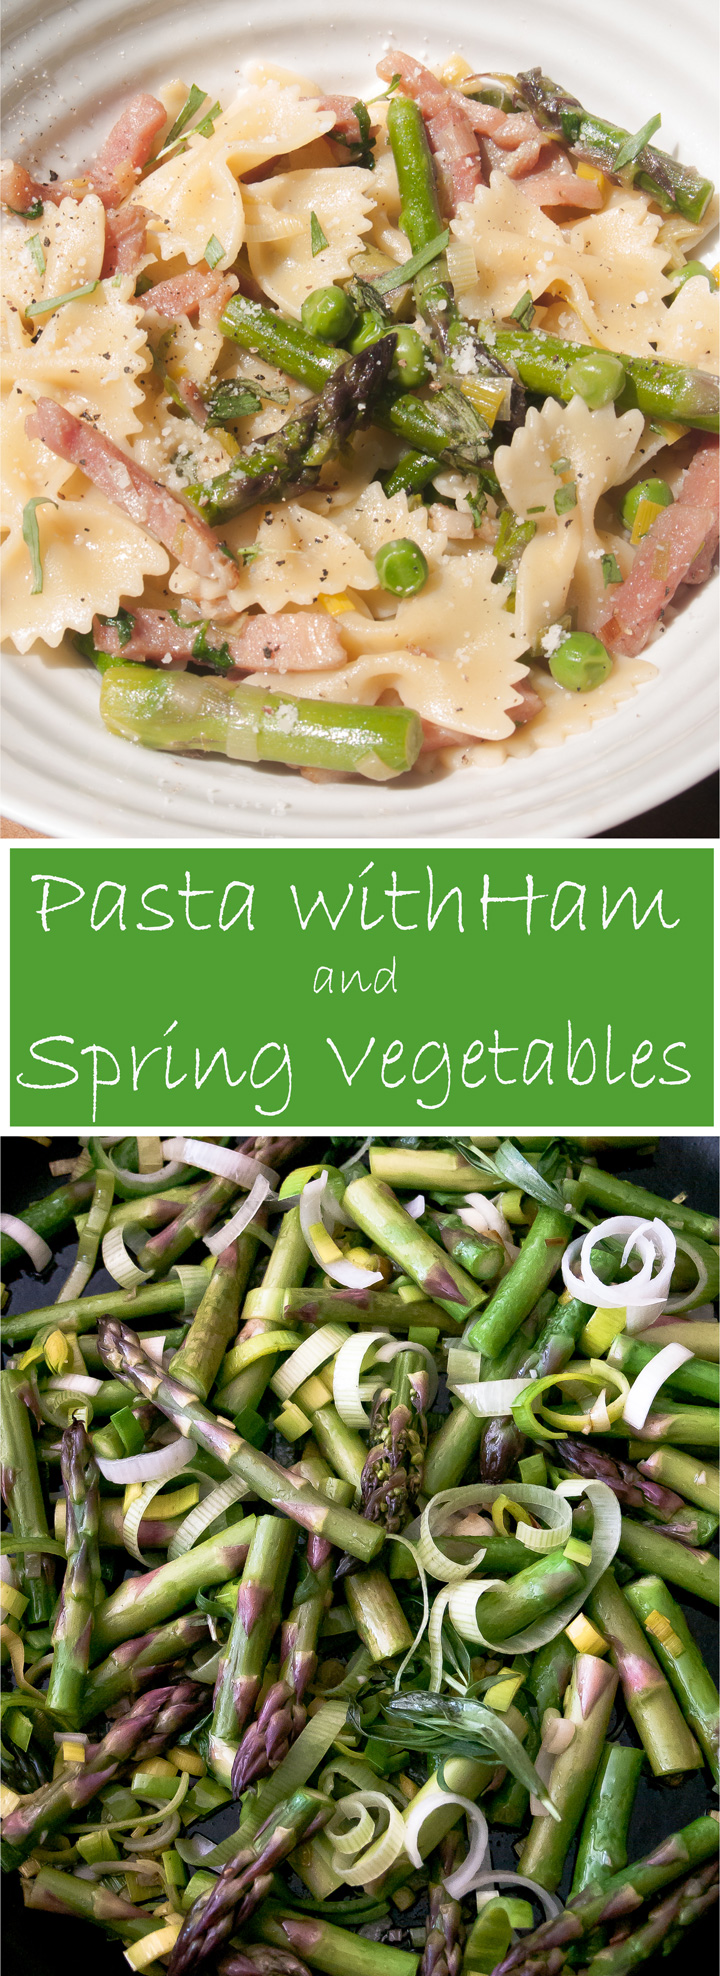 Pasta with Ham and Spring Vegetables. A family favorite pasta dinner recipe with ham and asparagus, leeks and peas. A delicious medley of spring vegetables. Perfect for any night of the week.